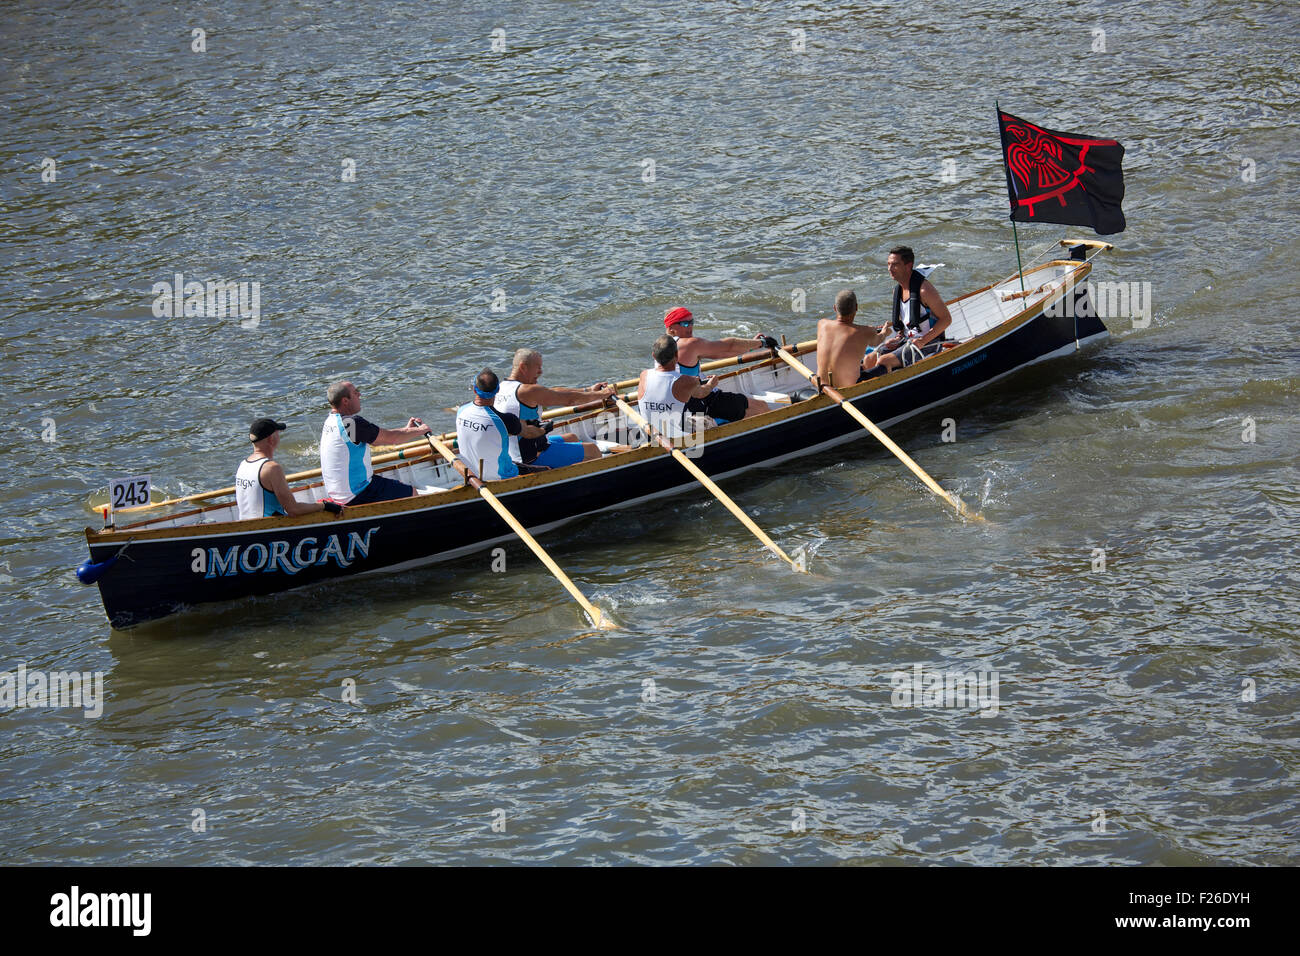 Richmond upon Thames, Surrey United Kingdom. 12 September 2015. Team 'Hobits Hombres' in a Cornish Pilot - Stock Image